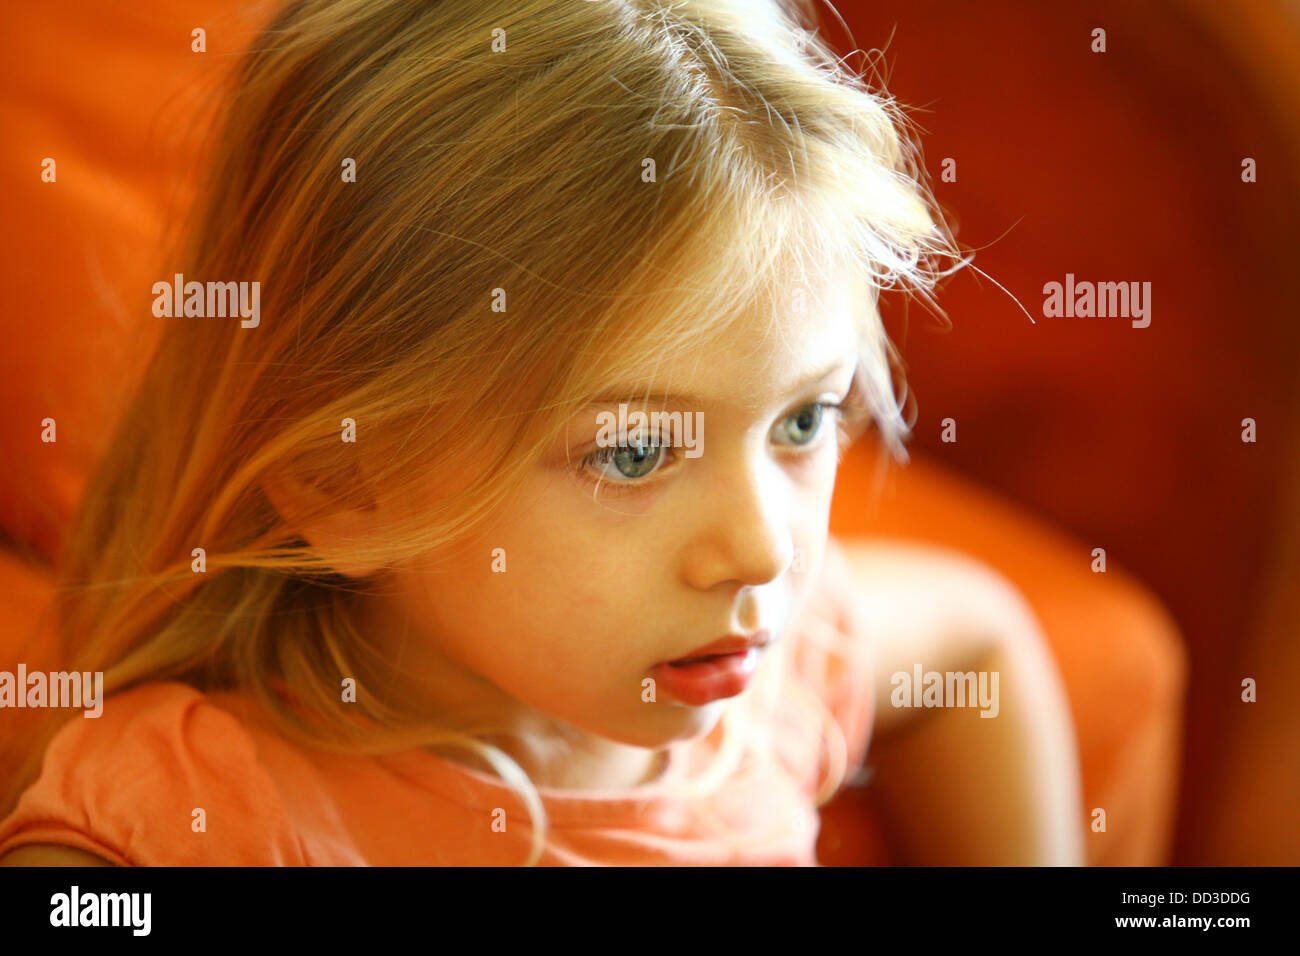 Young girl of 4 engrossed in a TV show Model release available - Stock Image